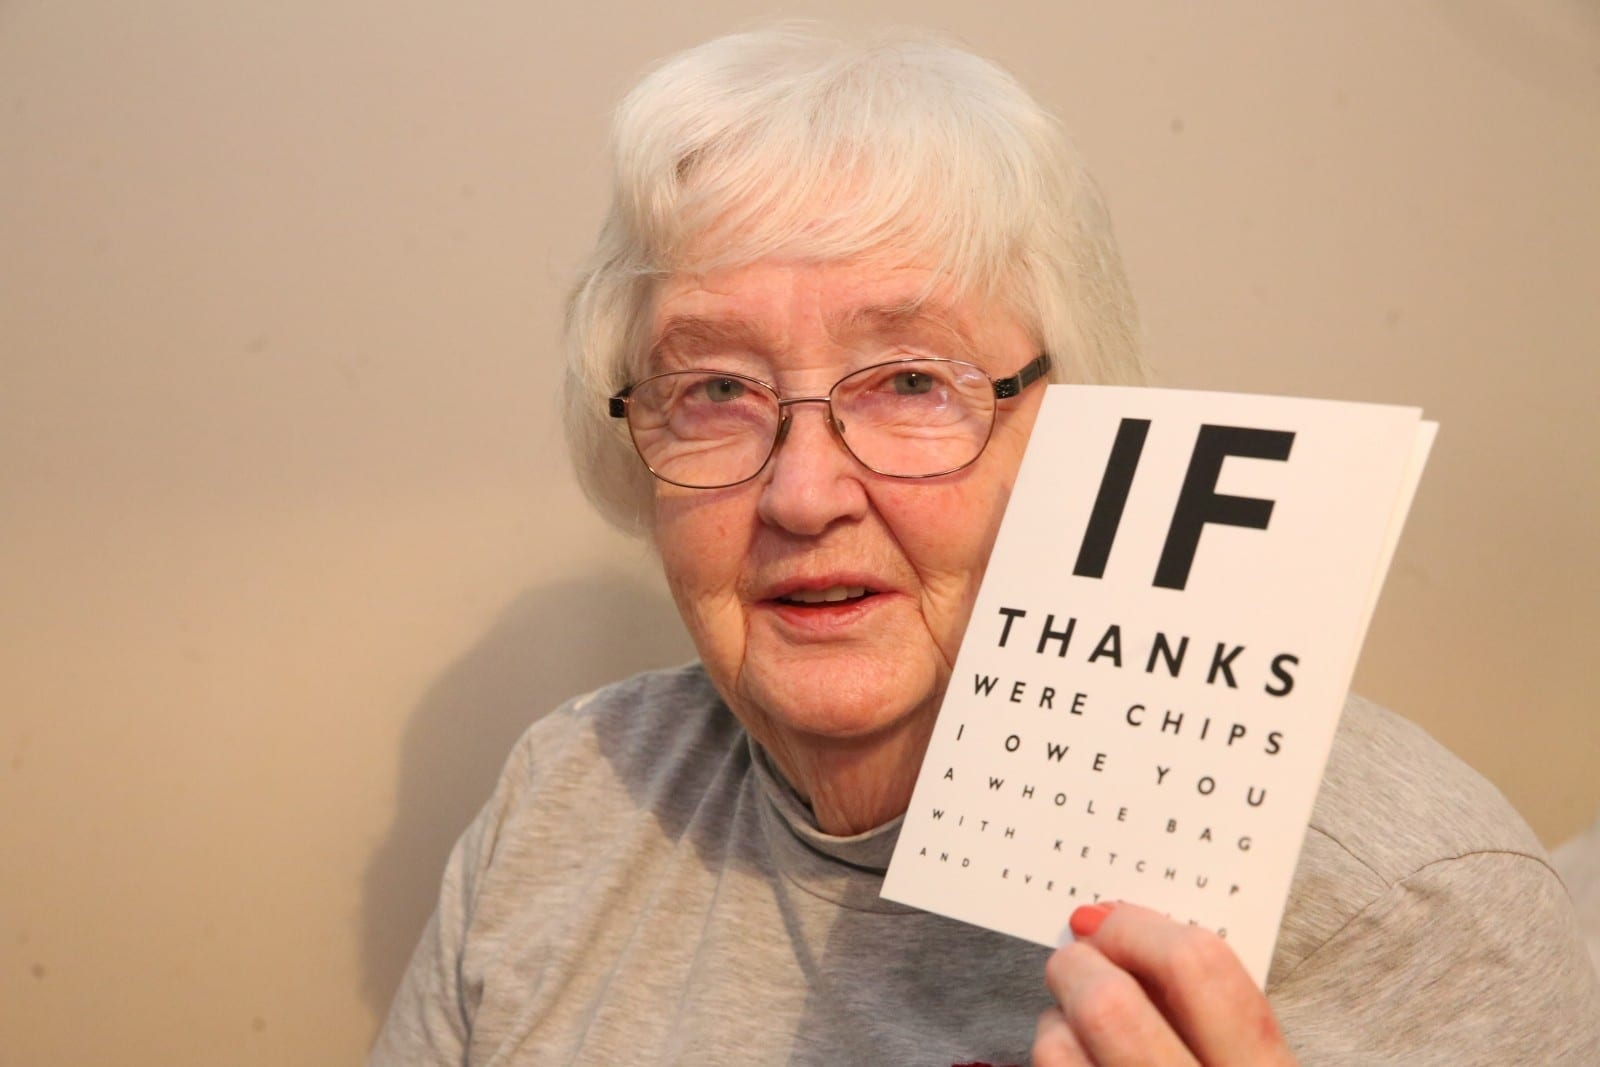 'They Saved My Life' - 80-Year-Old Had Her Life Saved By Opticians - Who Spotted She Was Having A Stroke